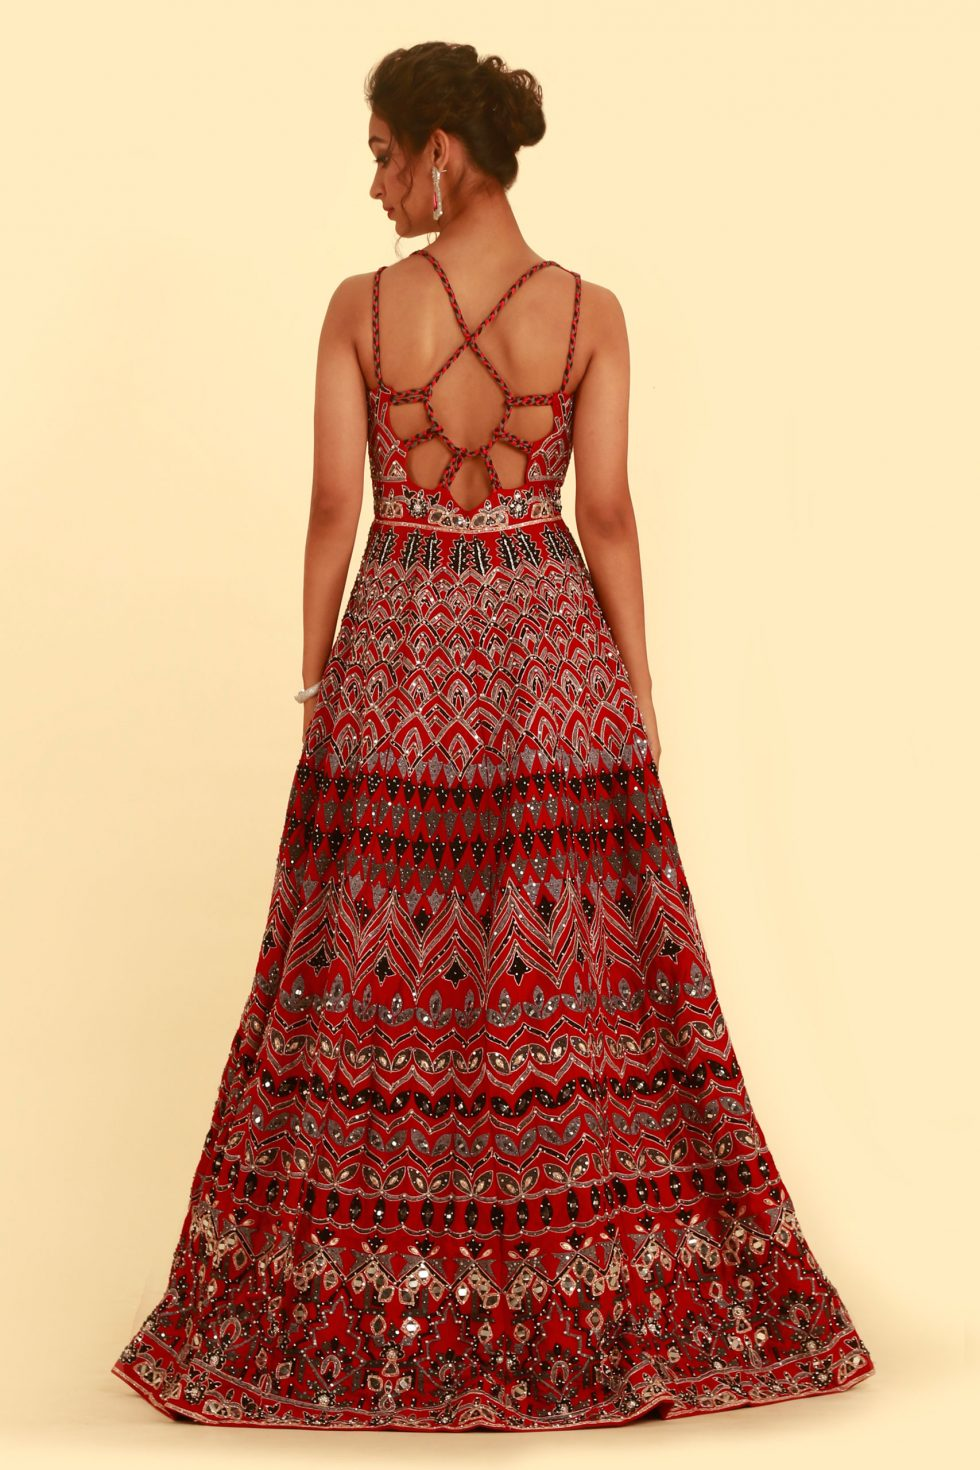 Fiery red gown set with contrast coloured embroidery, silver details and braided and cut out back details